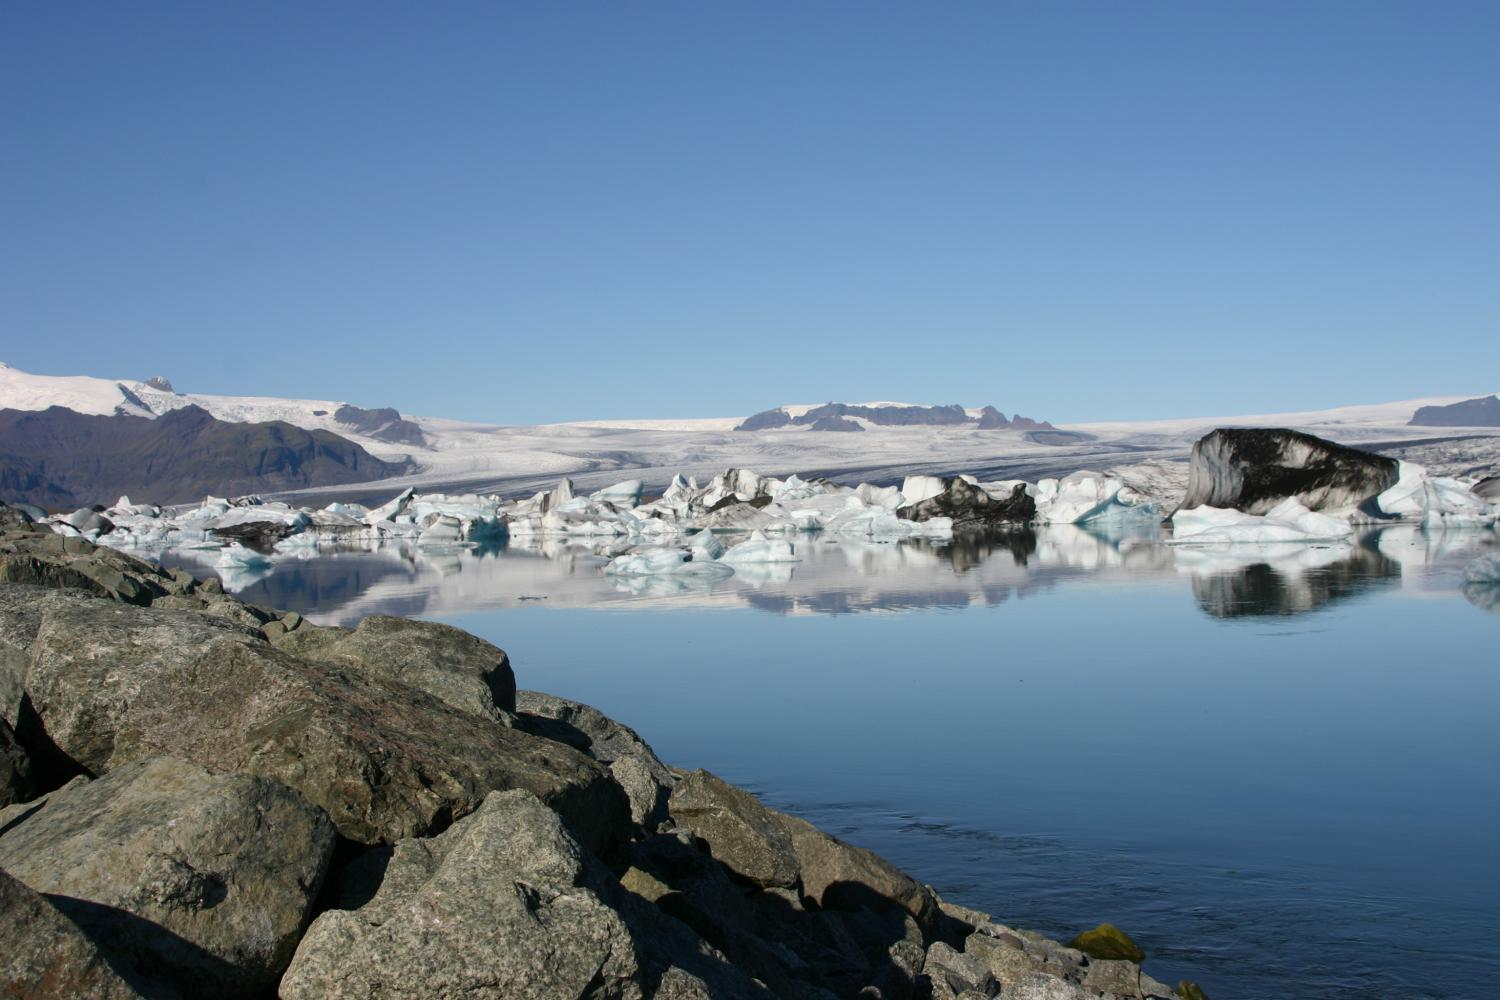 South Coast and Jökulsárlón Glacier Lagoon